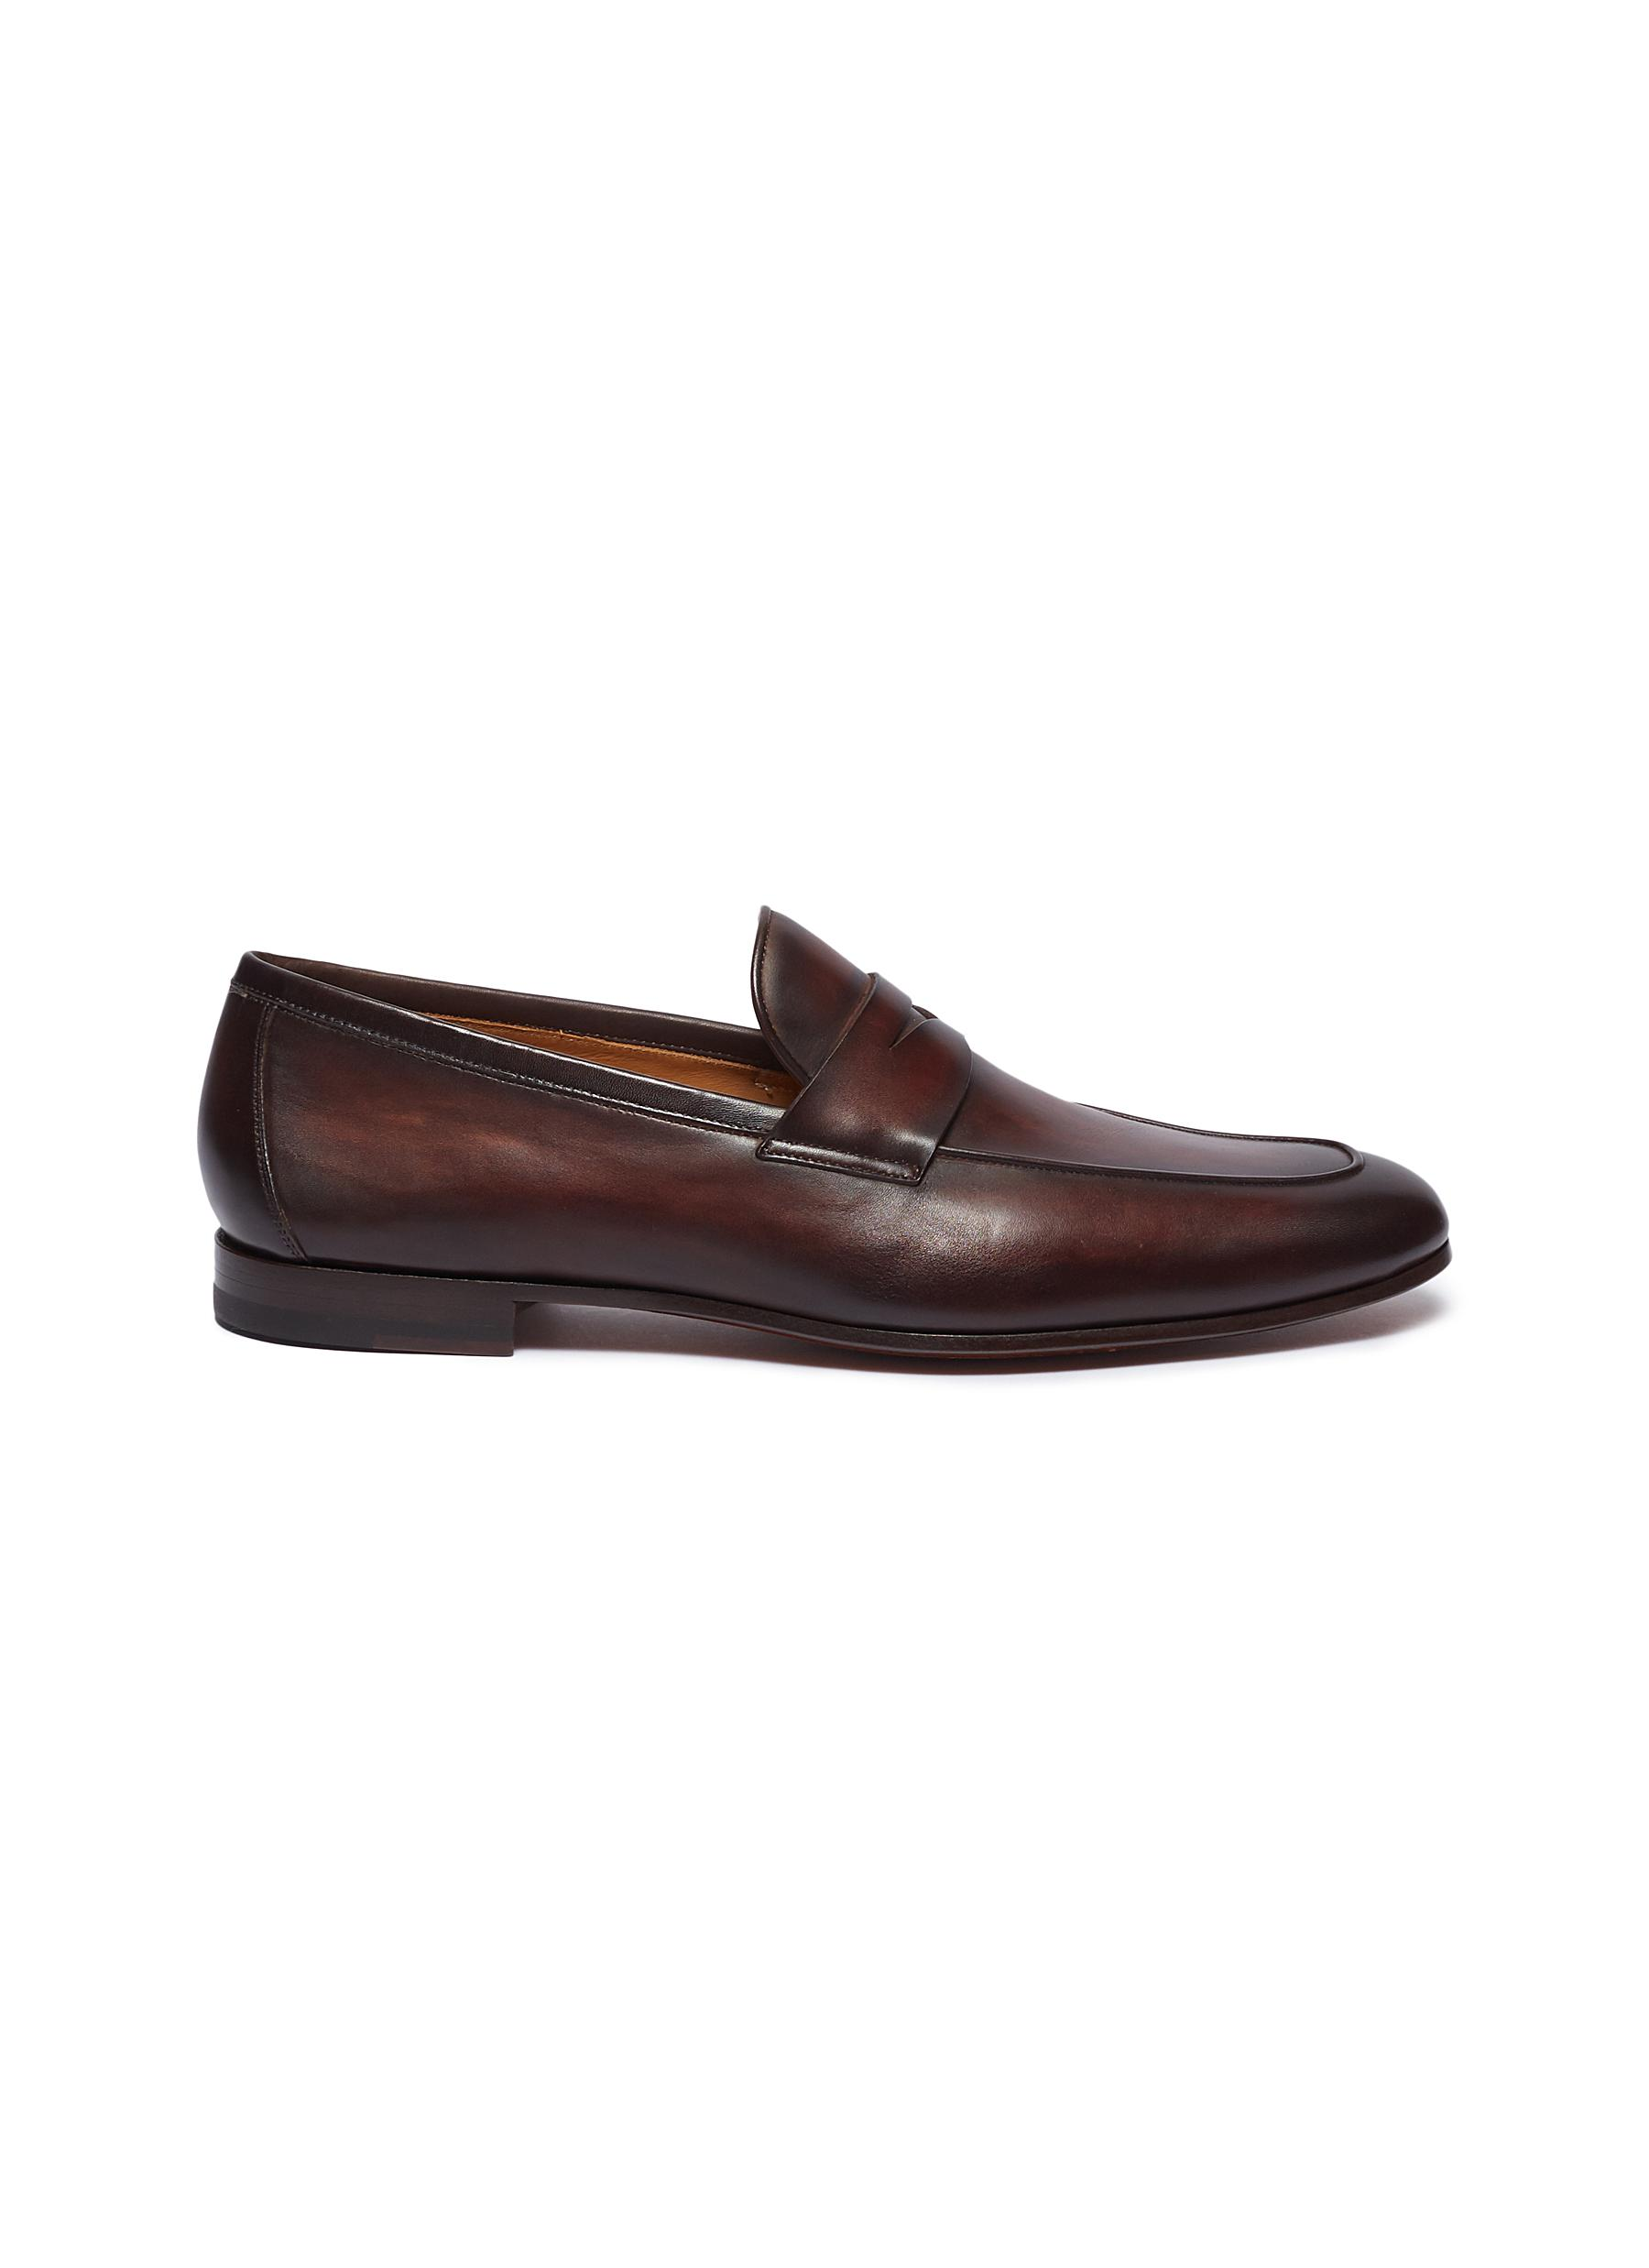 eca46126d04 Magnanni. Leather penny loafers